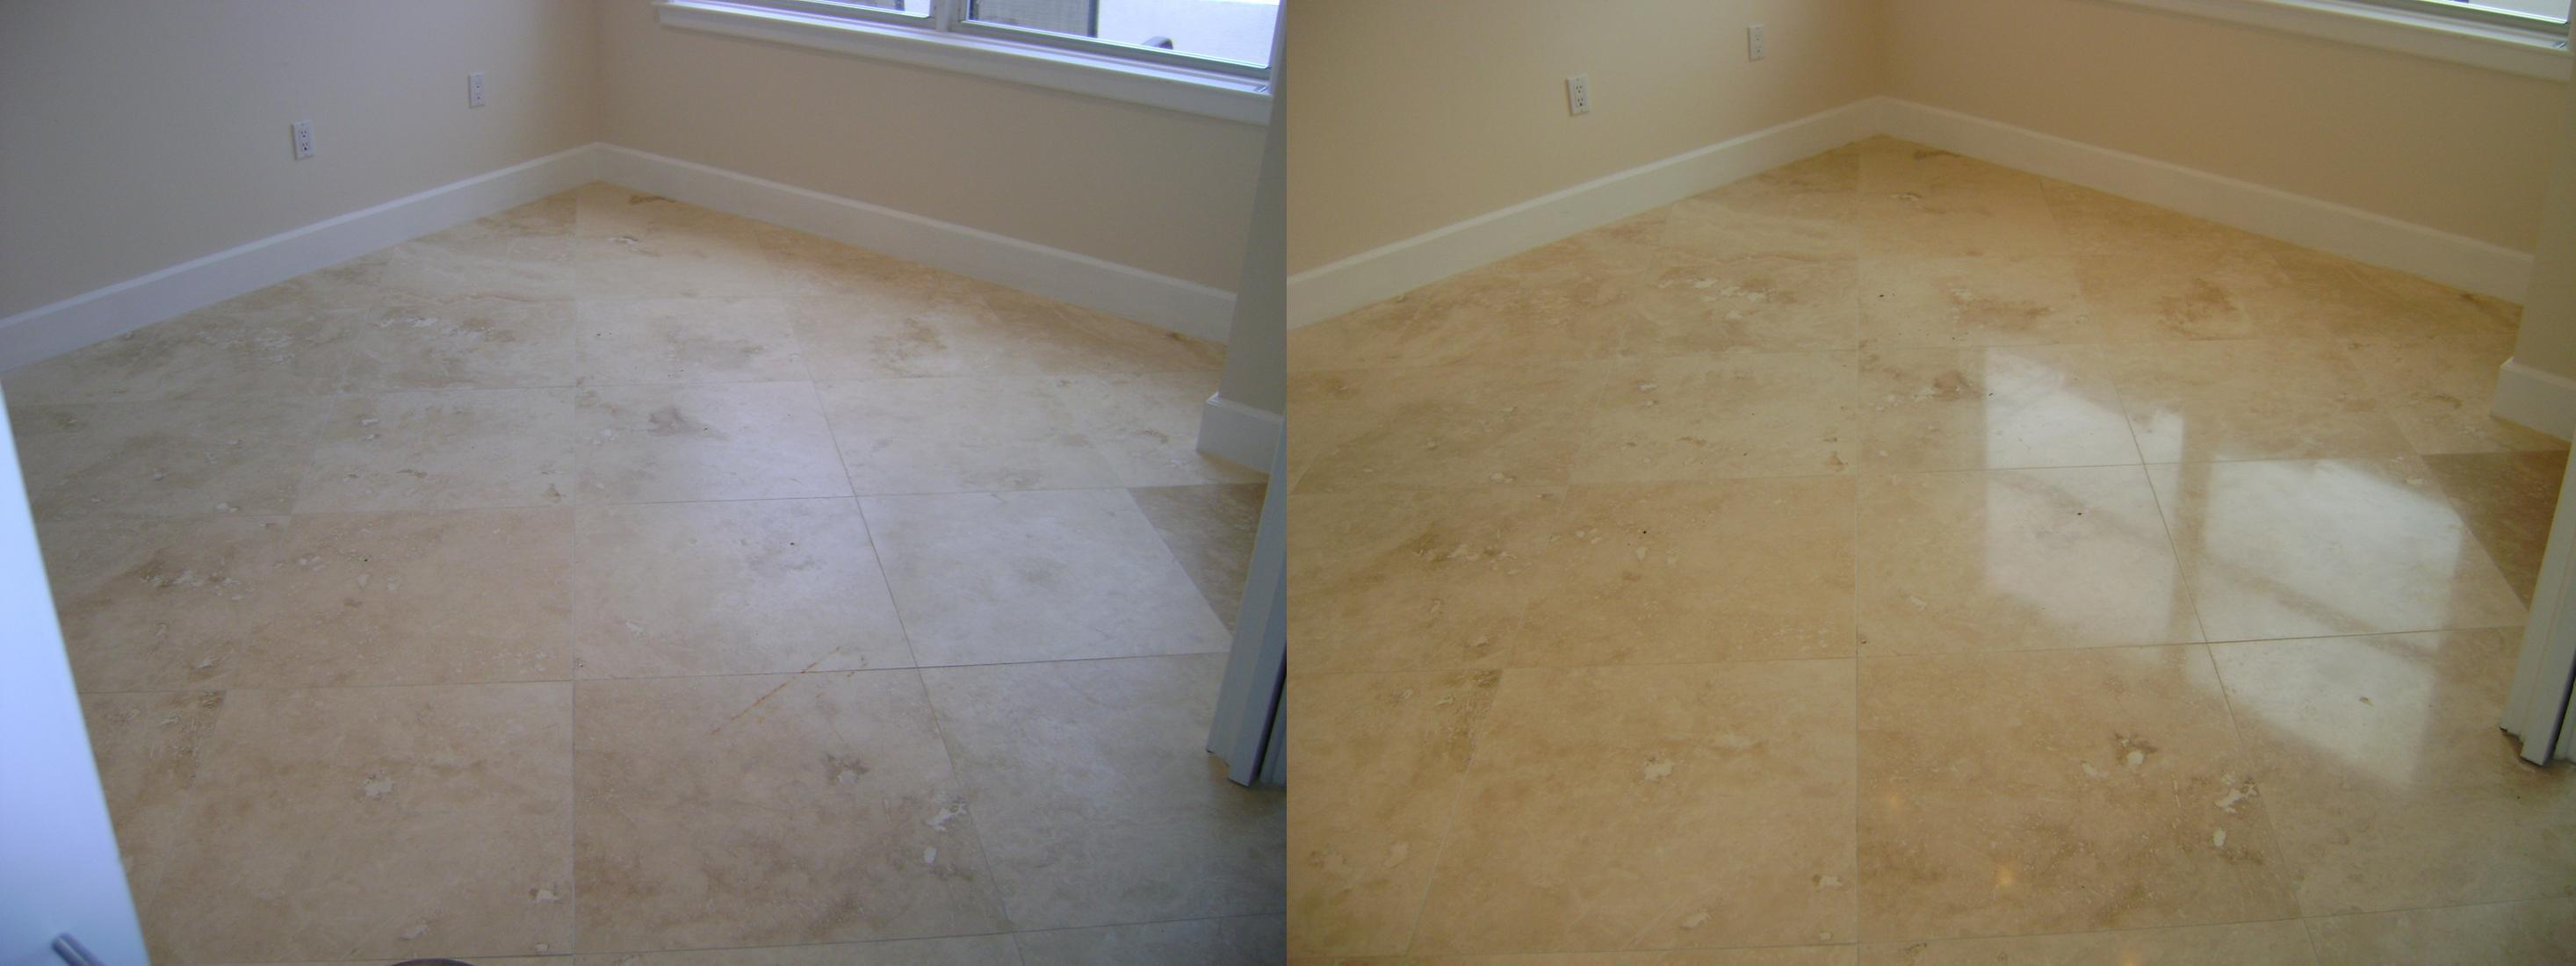 D I Y Travertine Or Natural Stone Diamond Polishing And